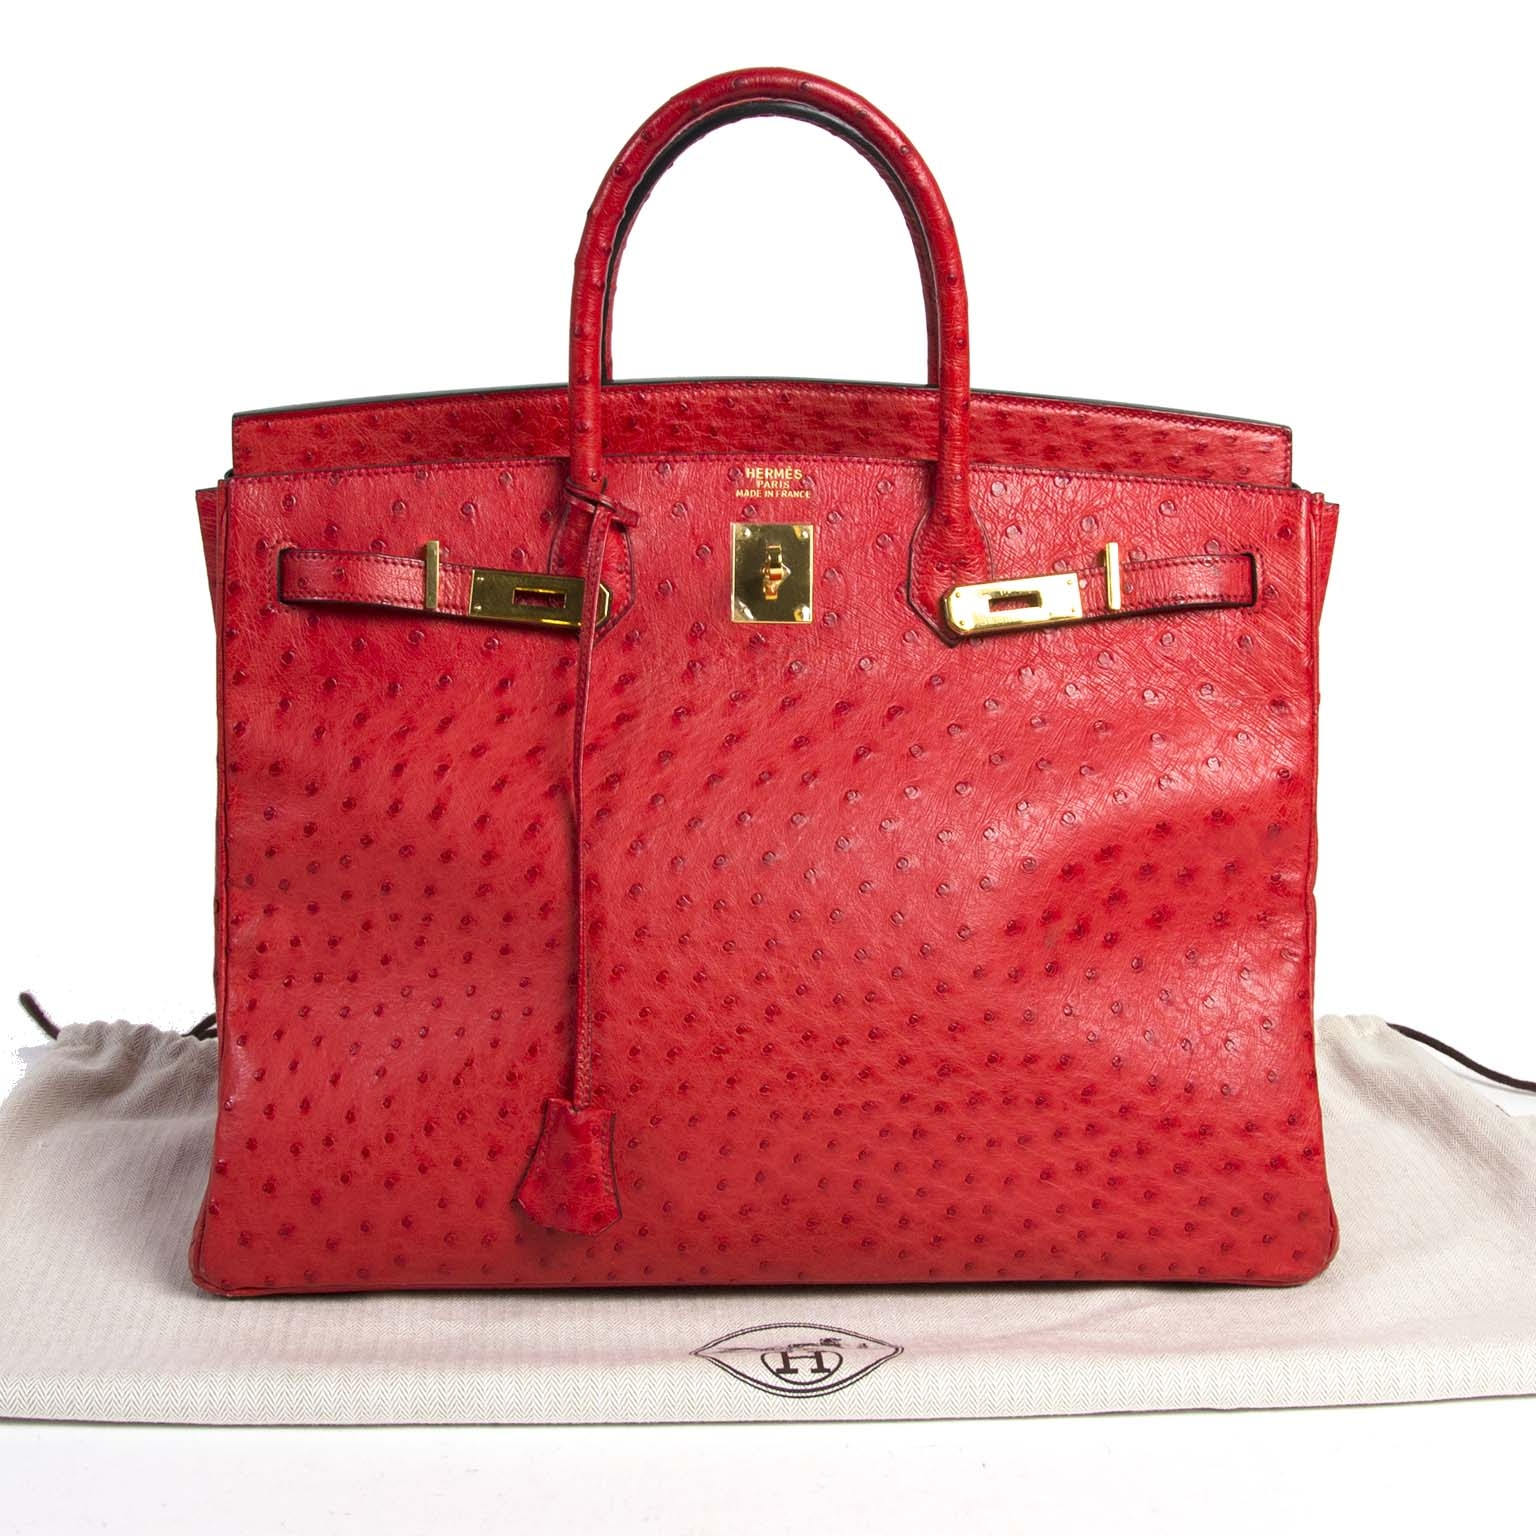 skip the waitinglist and get your Hermes Birkin 40 Ostrich Bougainvillea right now